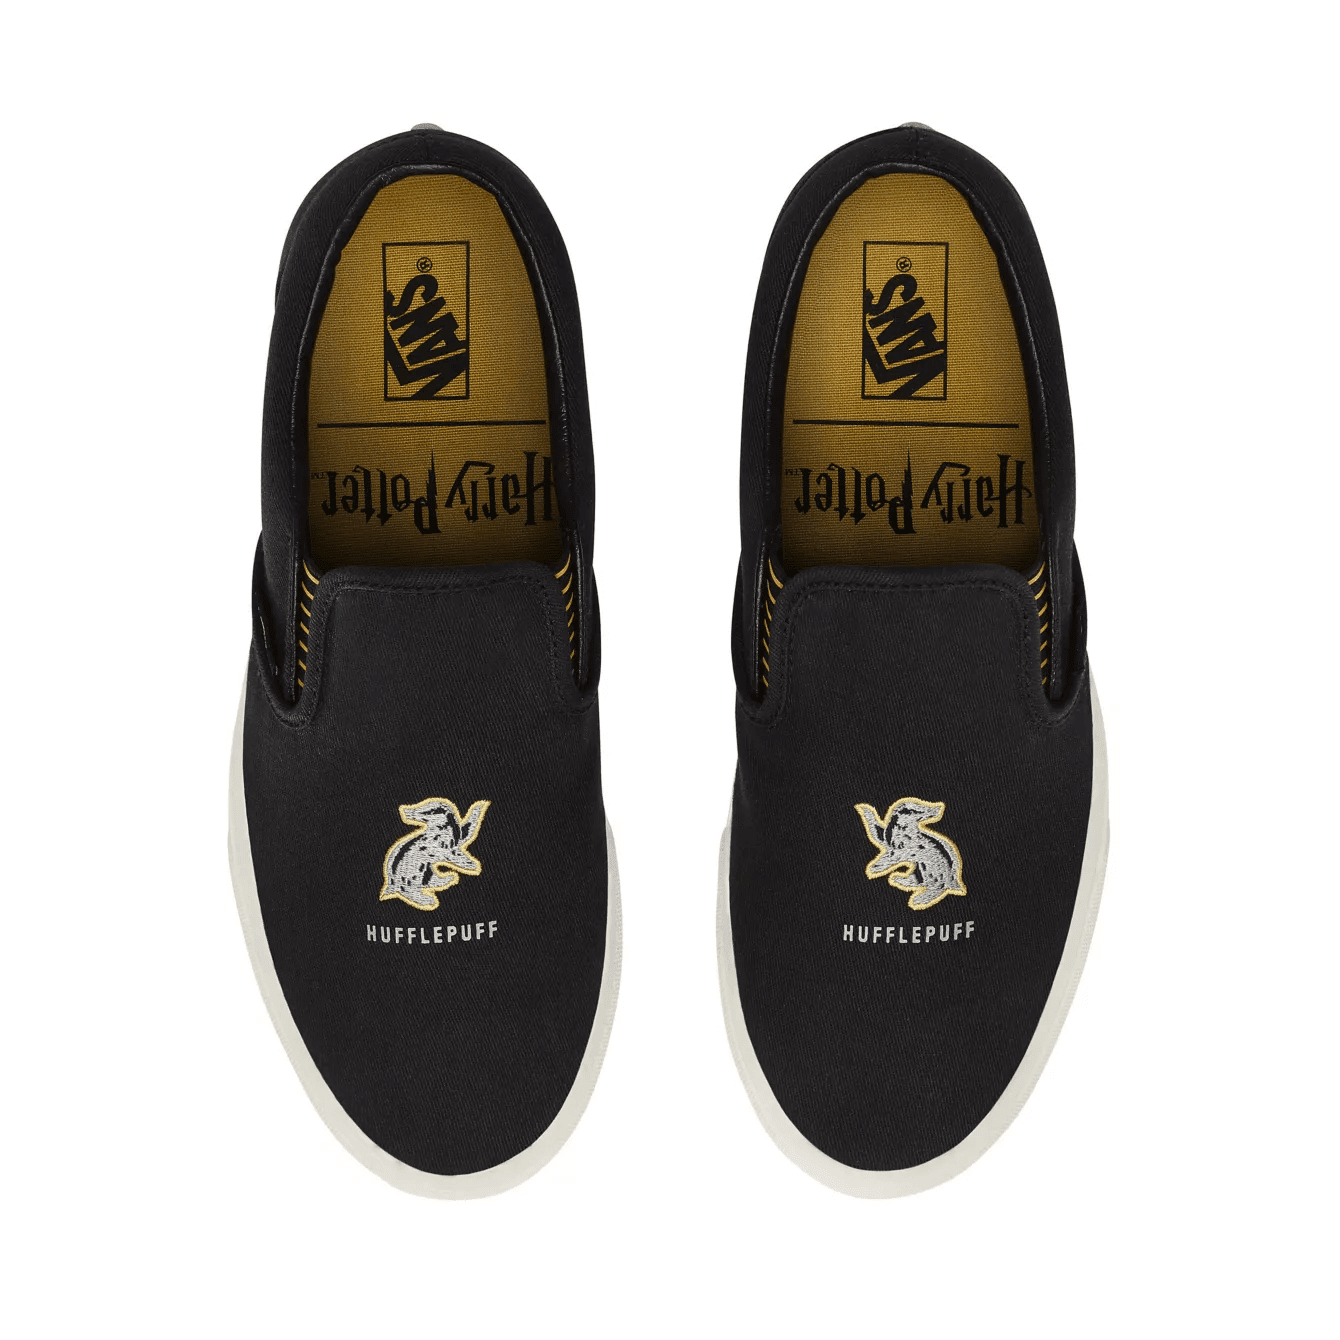 Vans X Harry Potter Hufflepuff Slip-On Sneakers